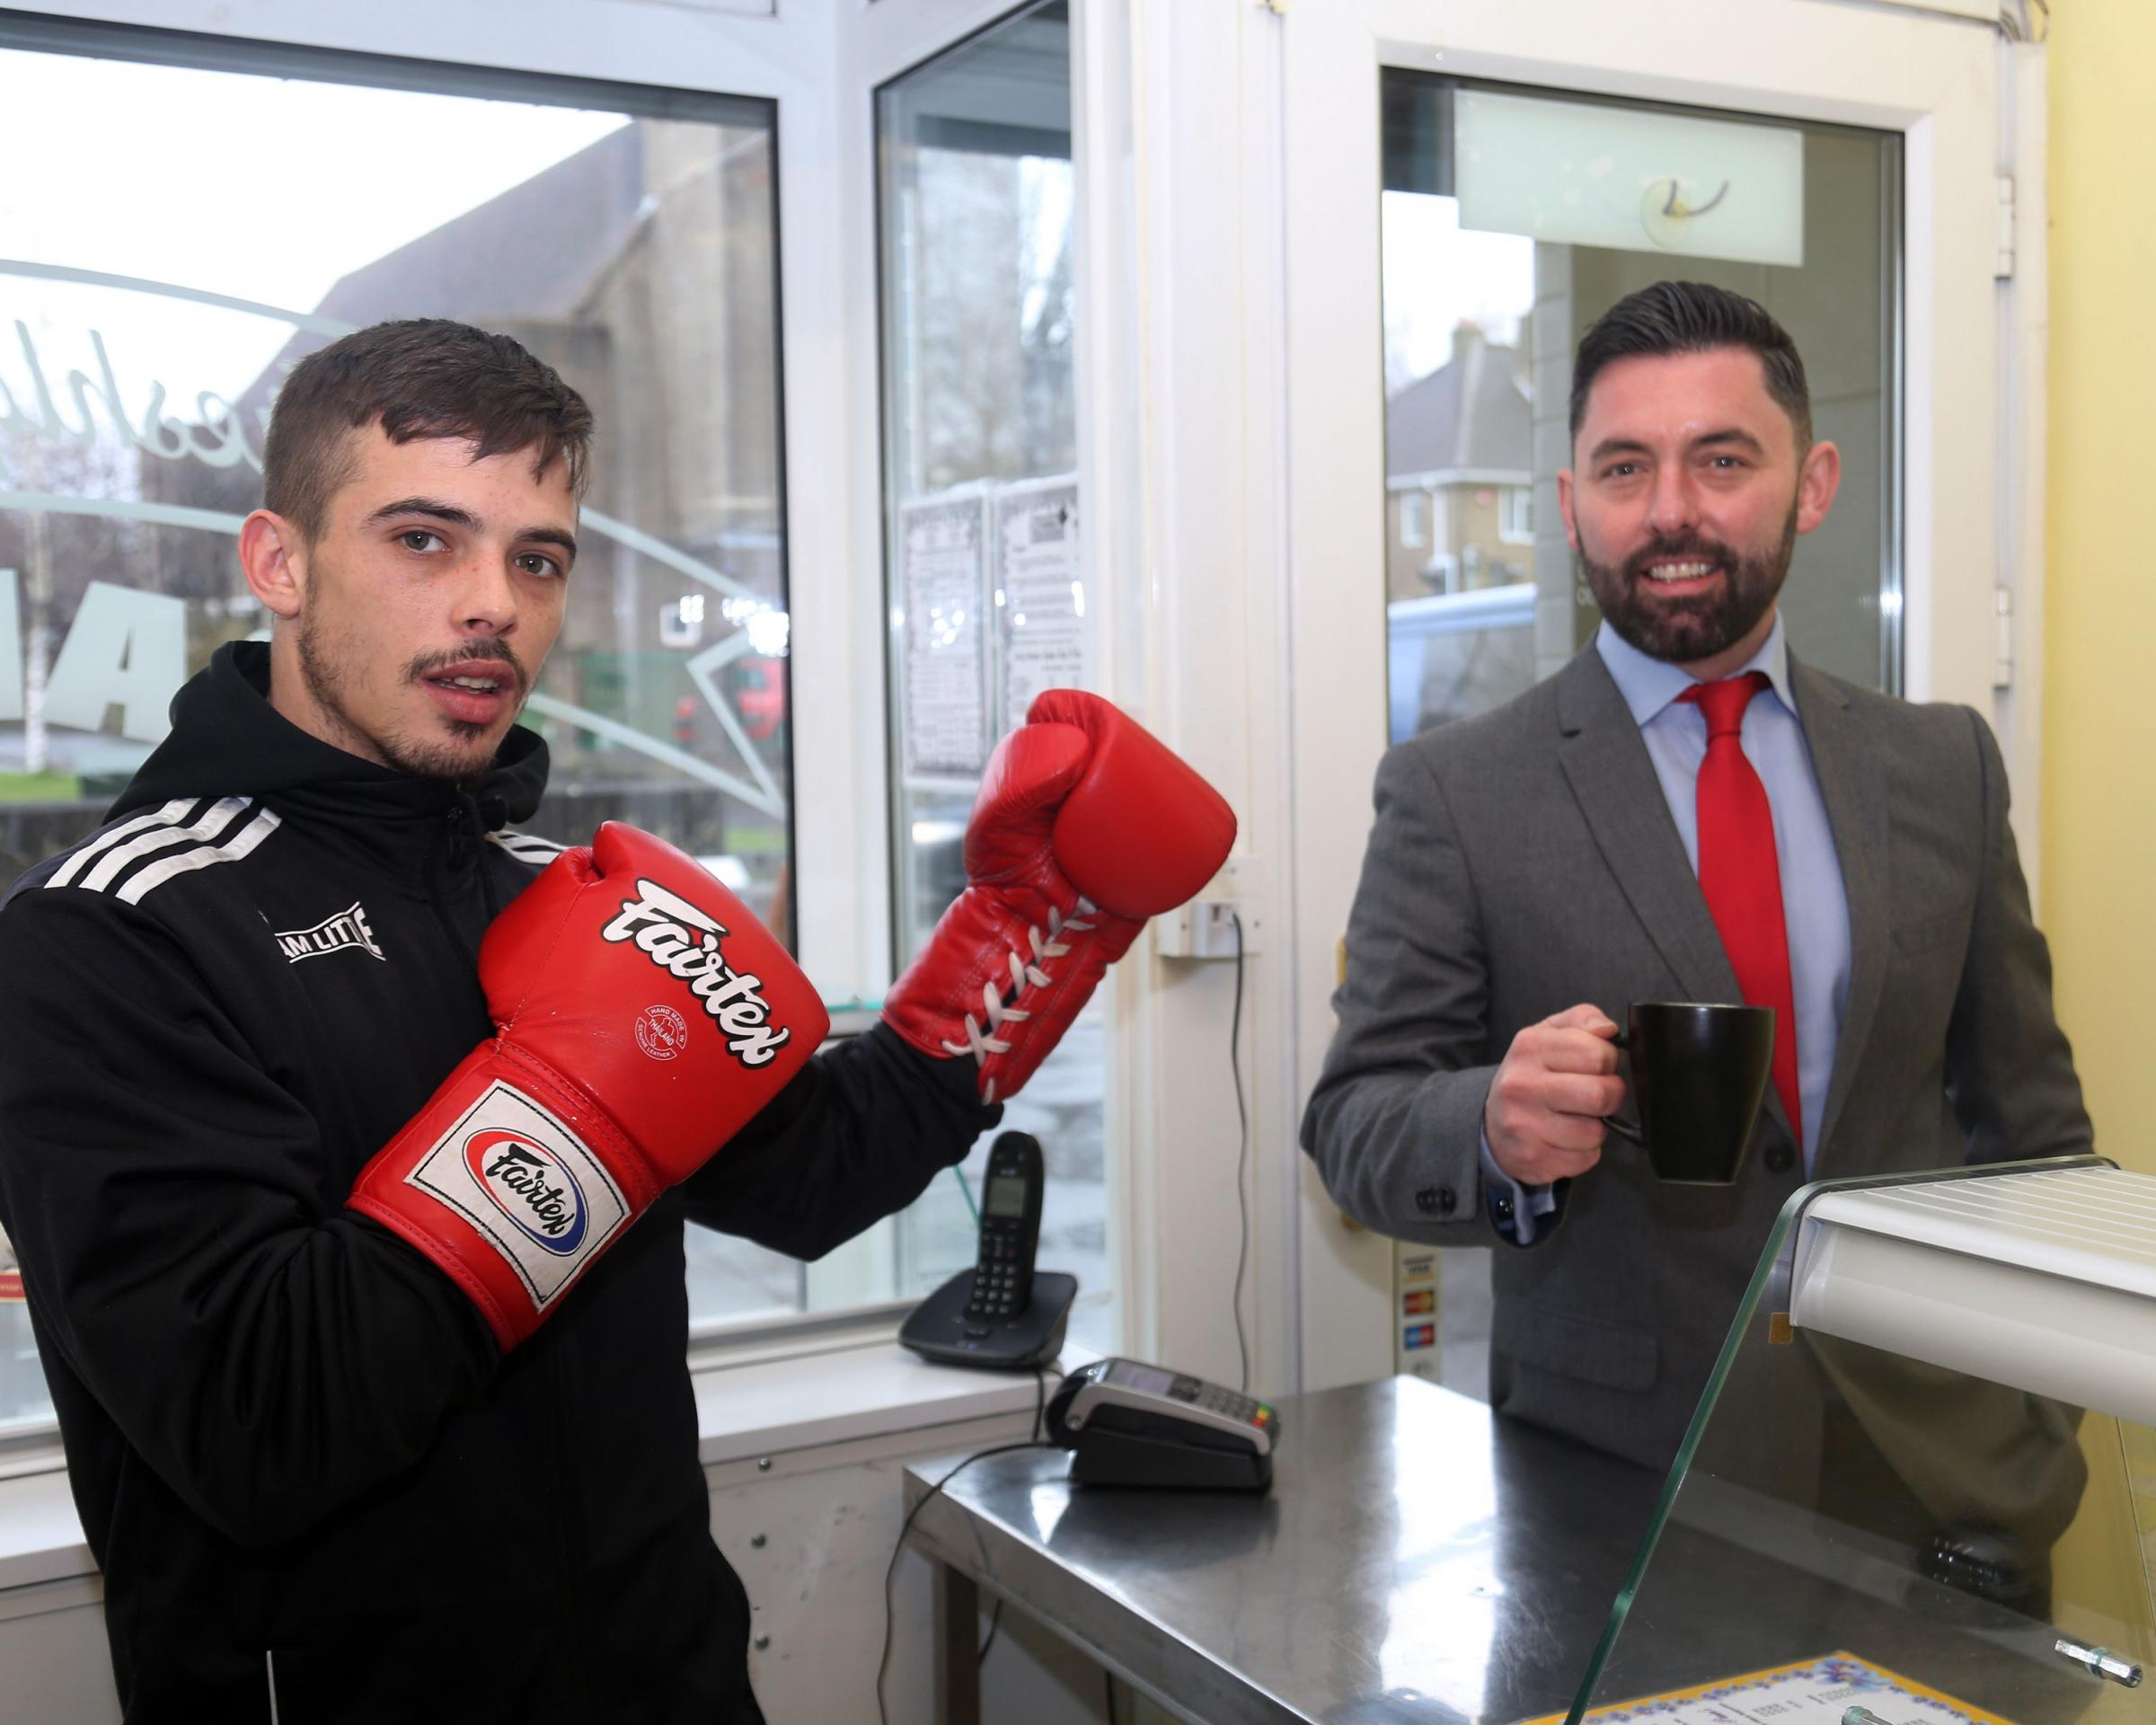 Ricky Little Ricky  with John Scroggins, national valuations manager for Hilton Smythe, at the Bridgeway Cafe which he is selling to pursue a career as a professional boxer